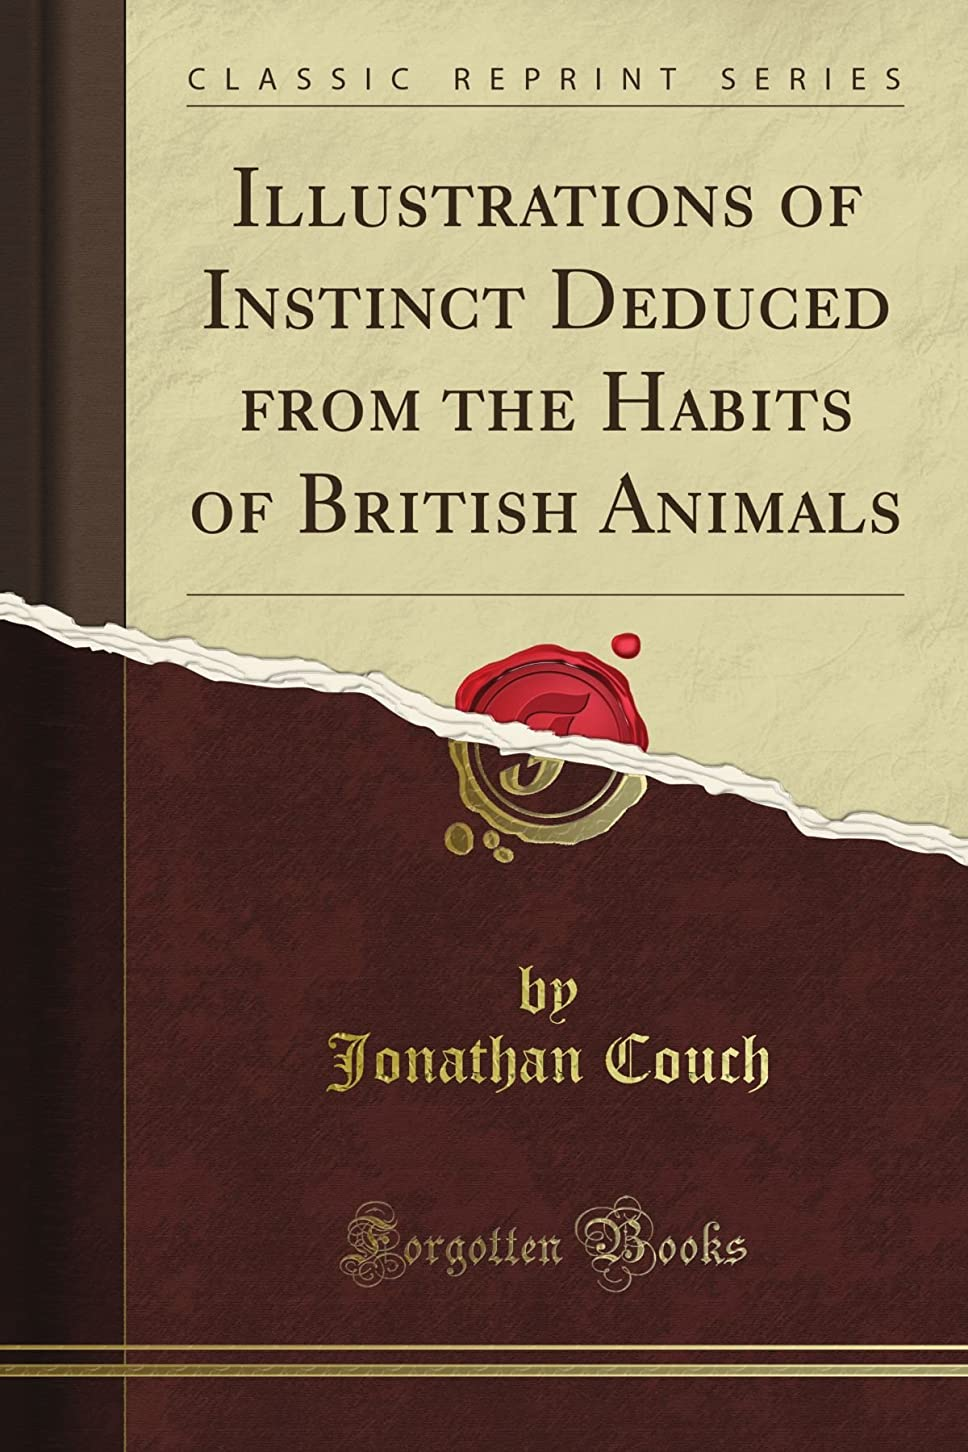 Illustrations of Instinct Deduced from the Habits of British Animals (Classic Reprint)